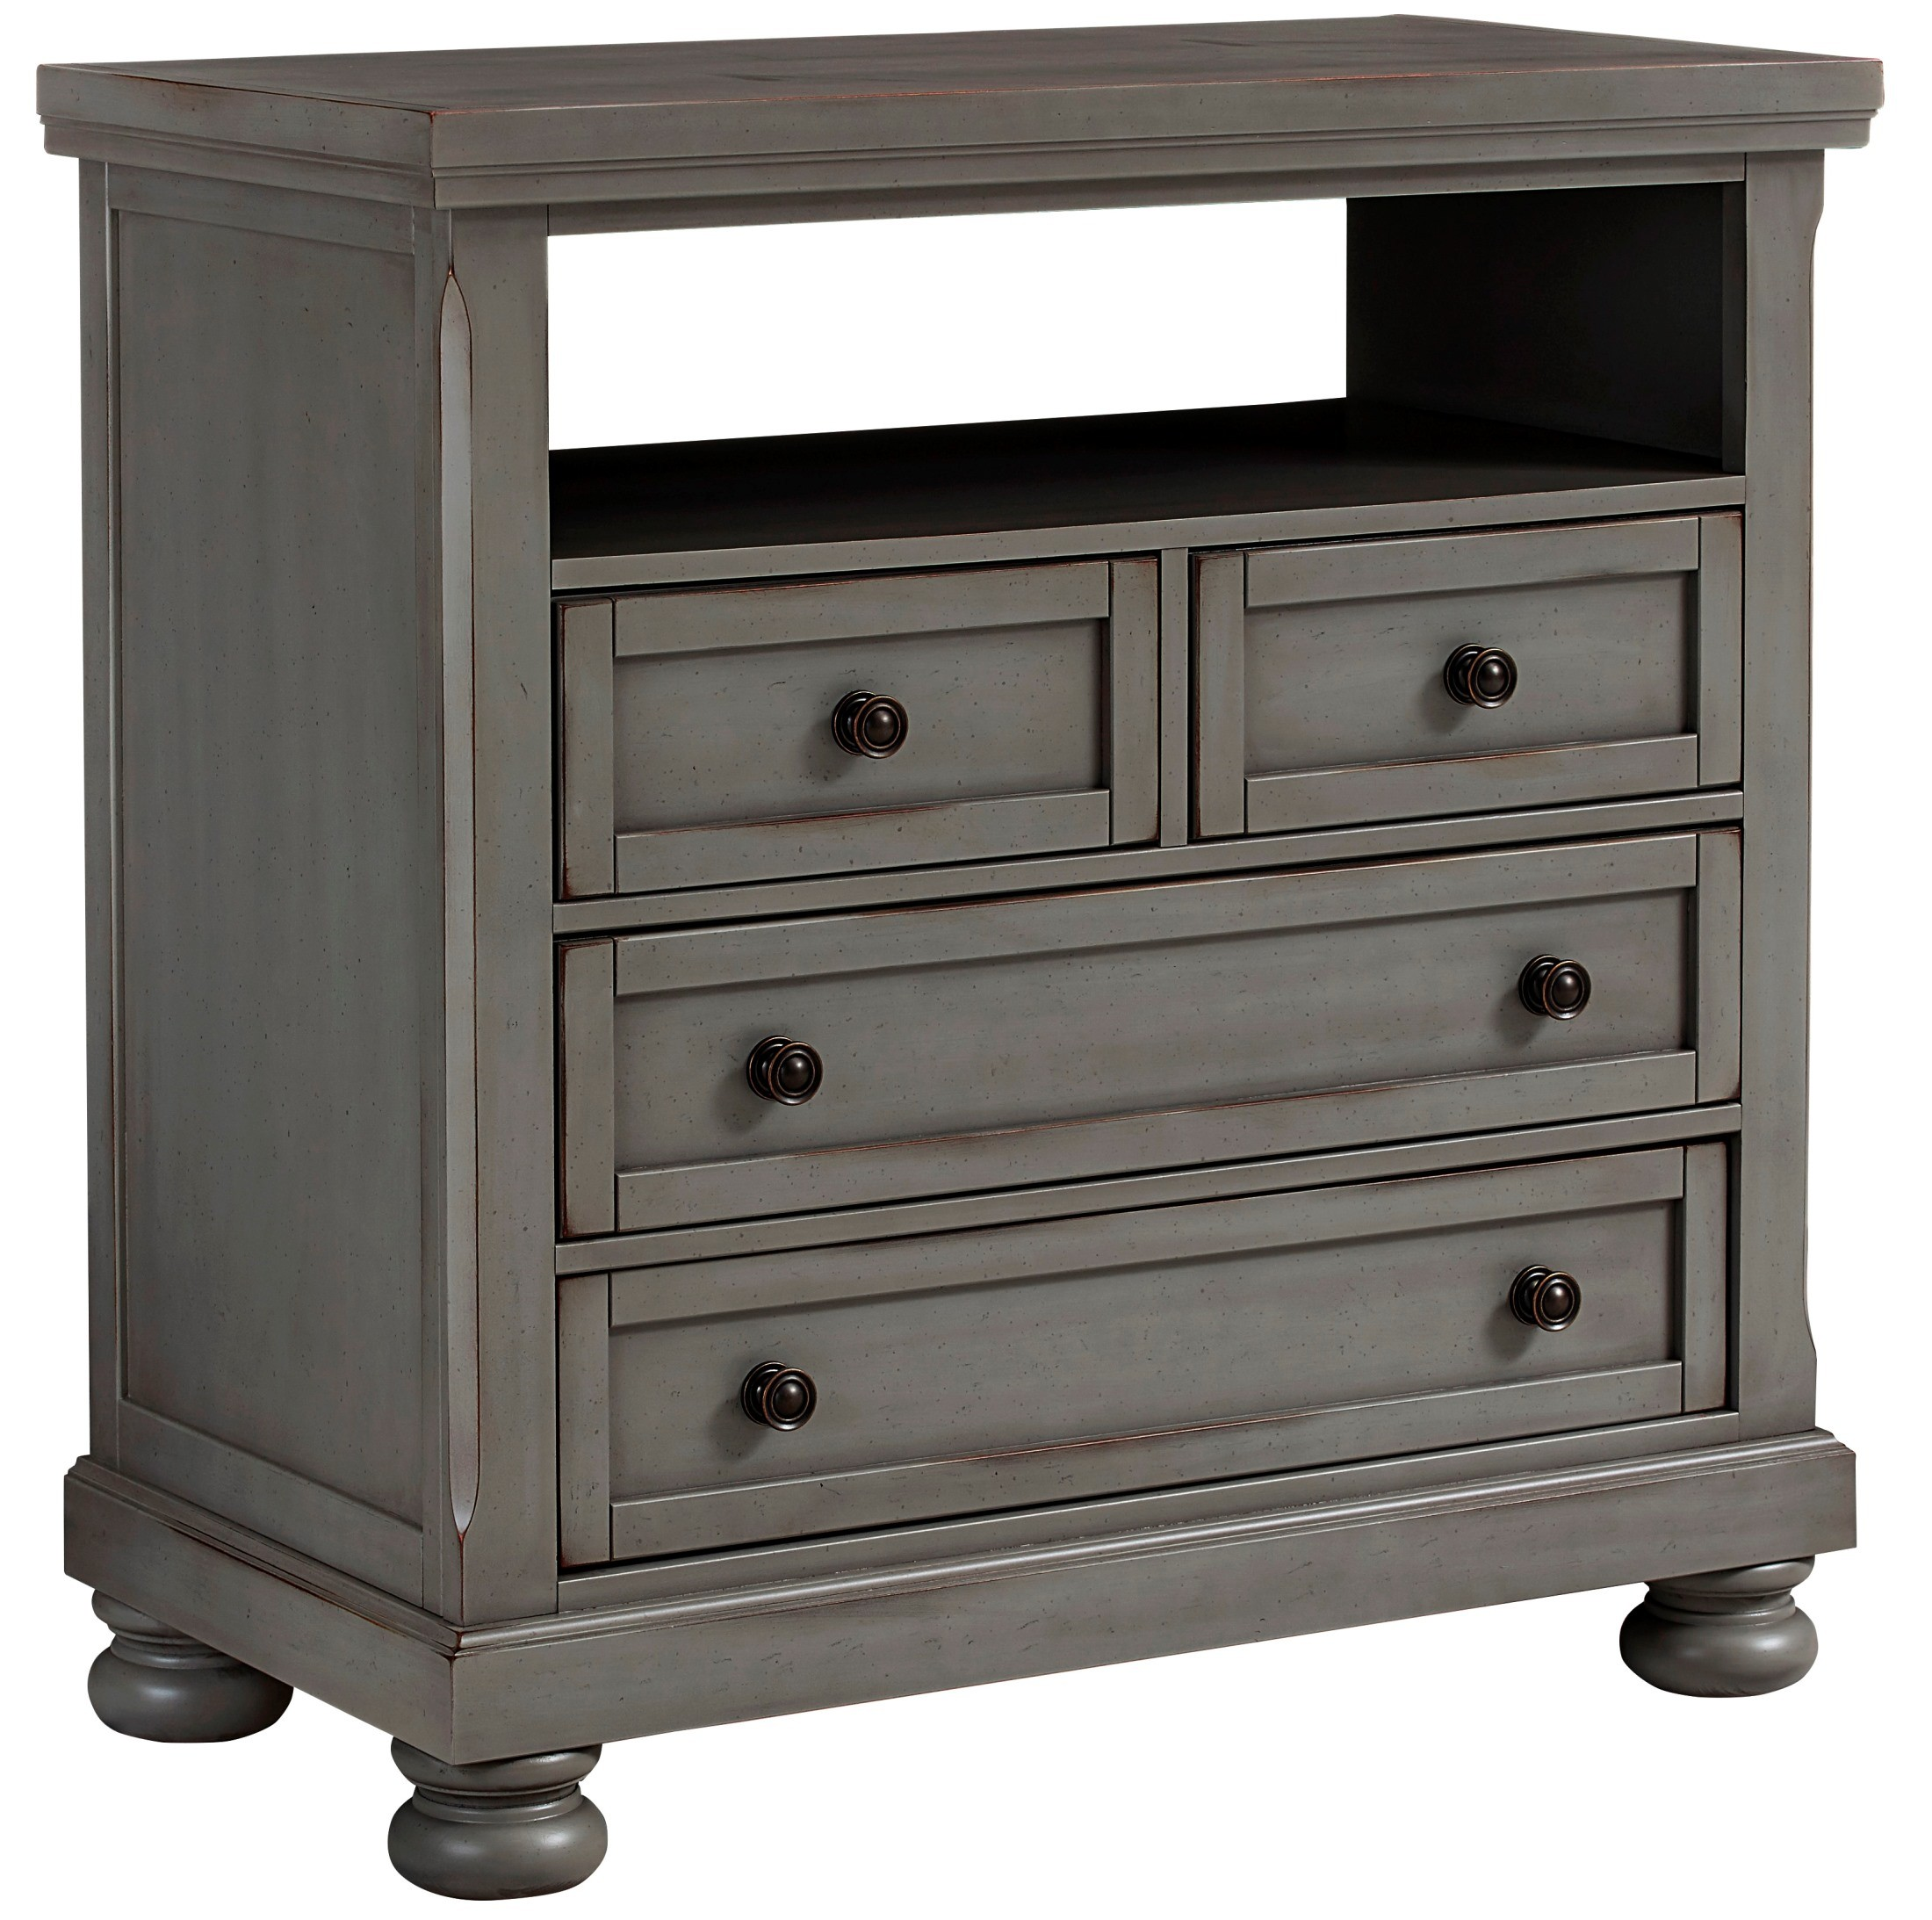 Bassett Coupon: Reflections Antique Pewter Sleigh Storage Bedroom Set From